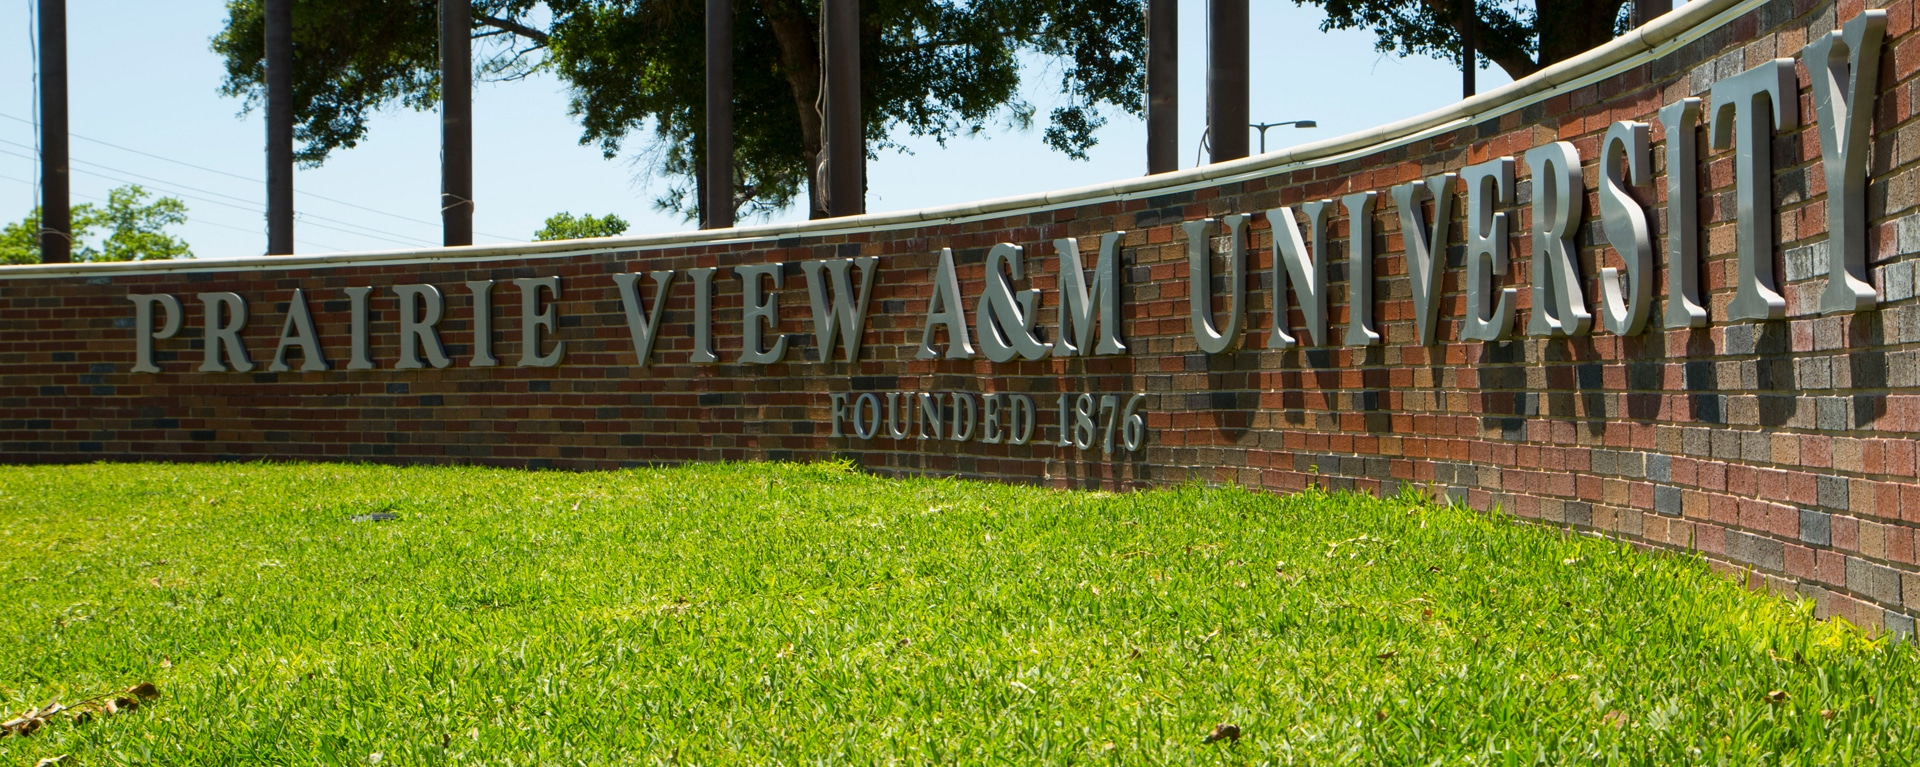 Prairie View A&M University launches new platform to provide specialized support for faculty career development